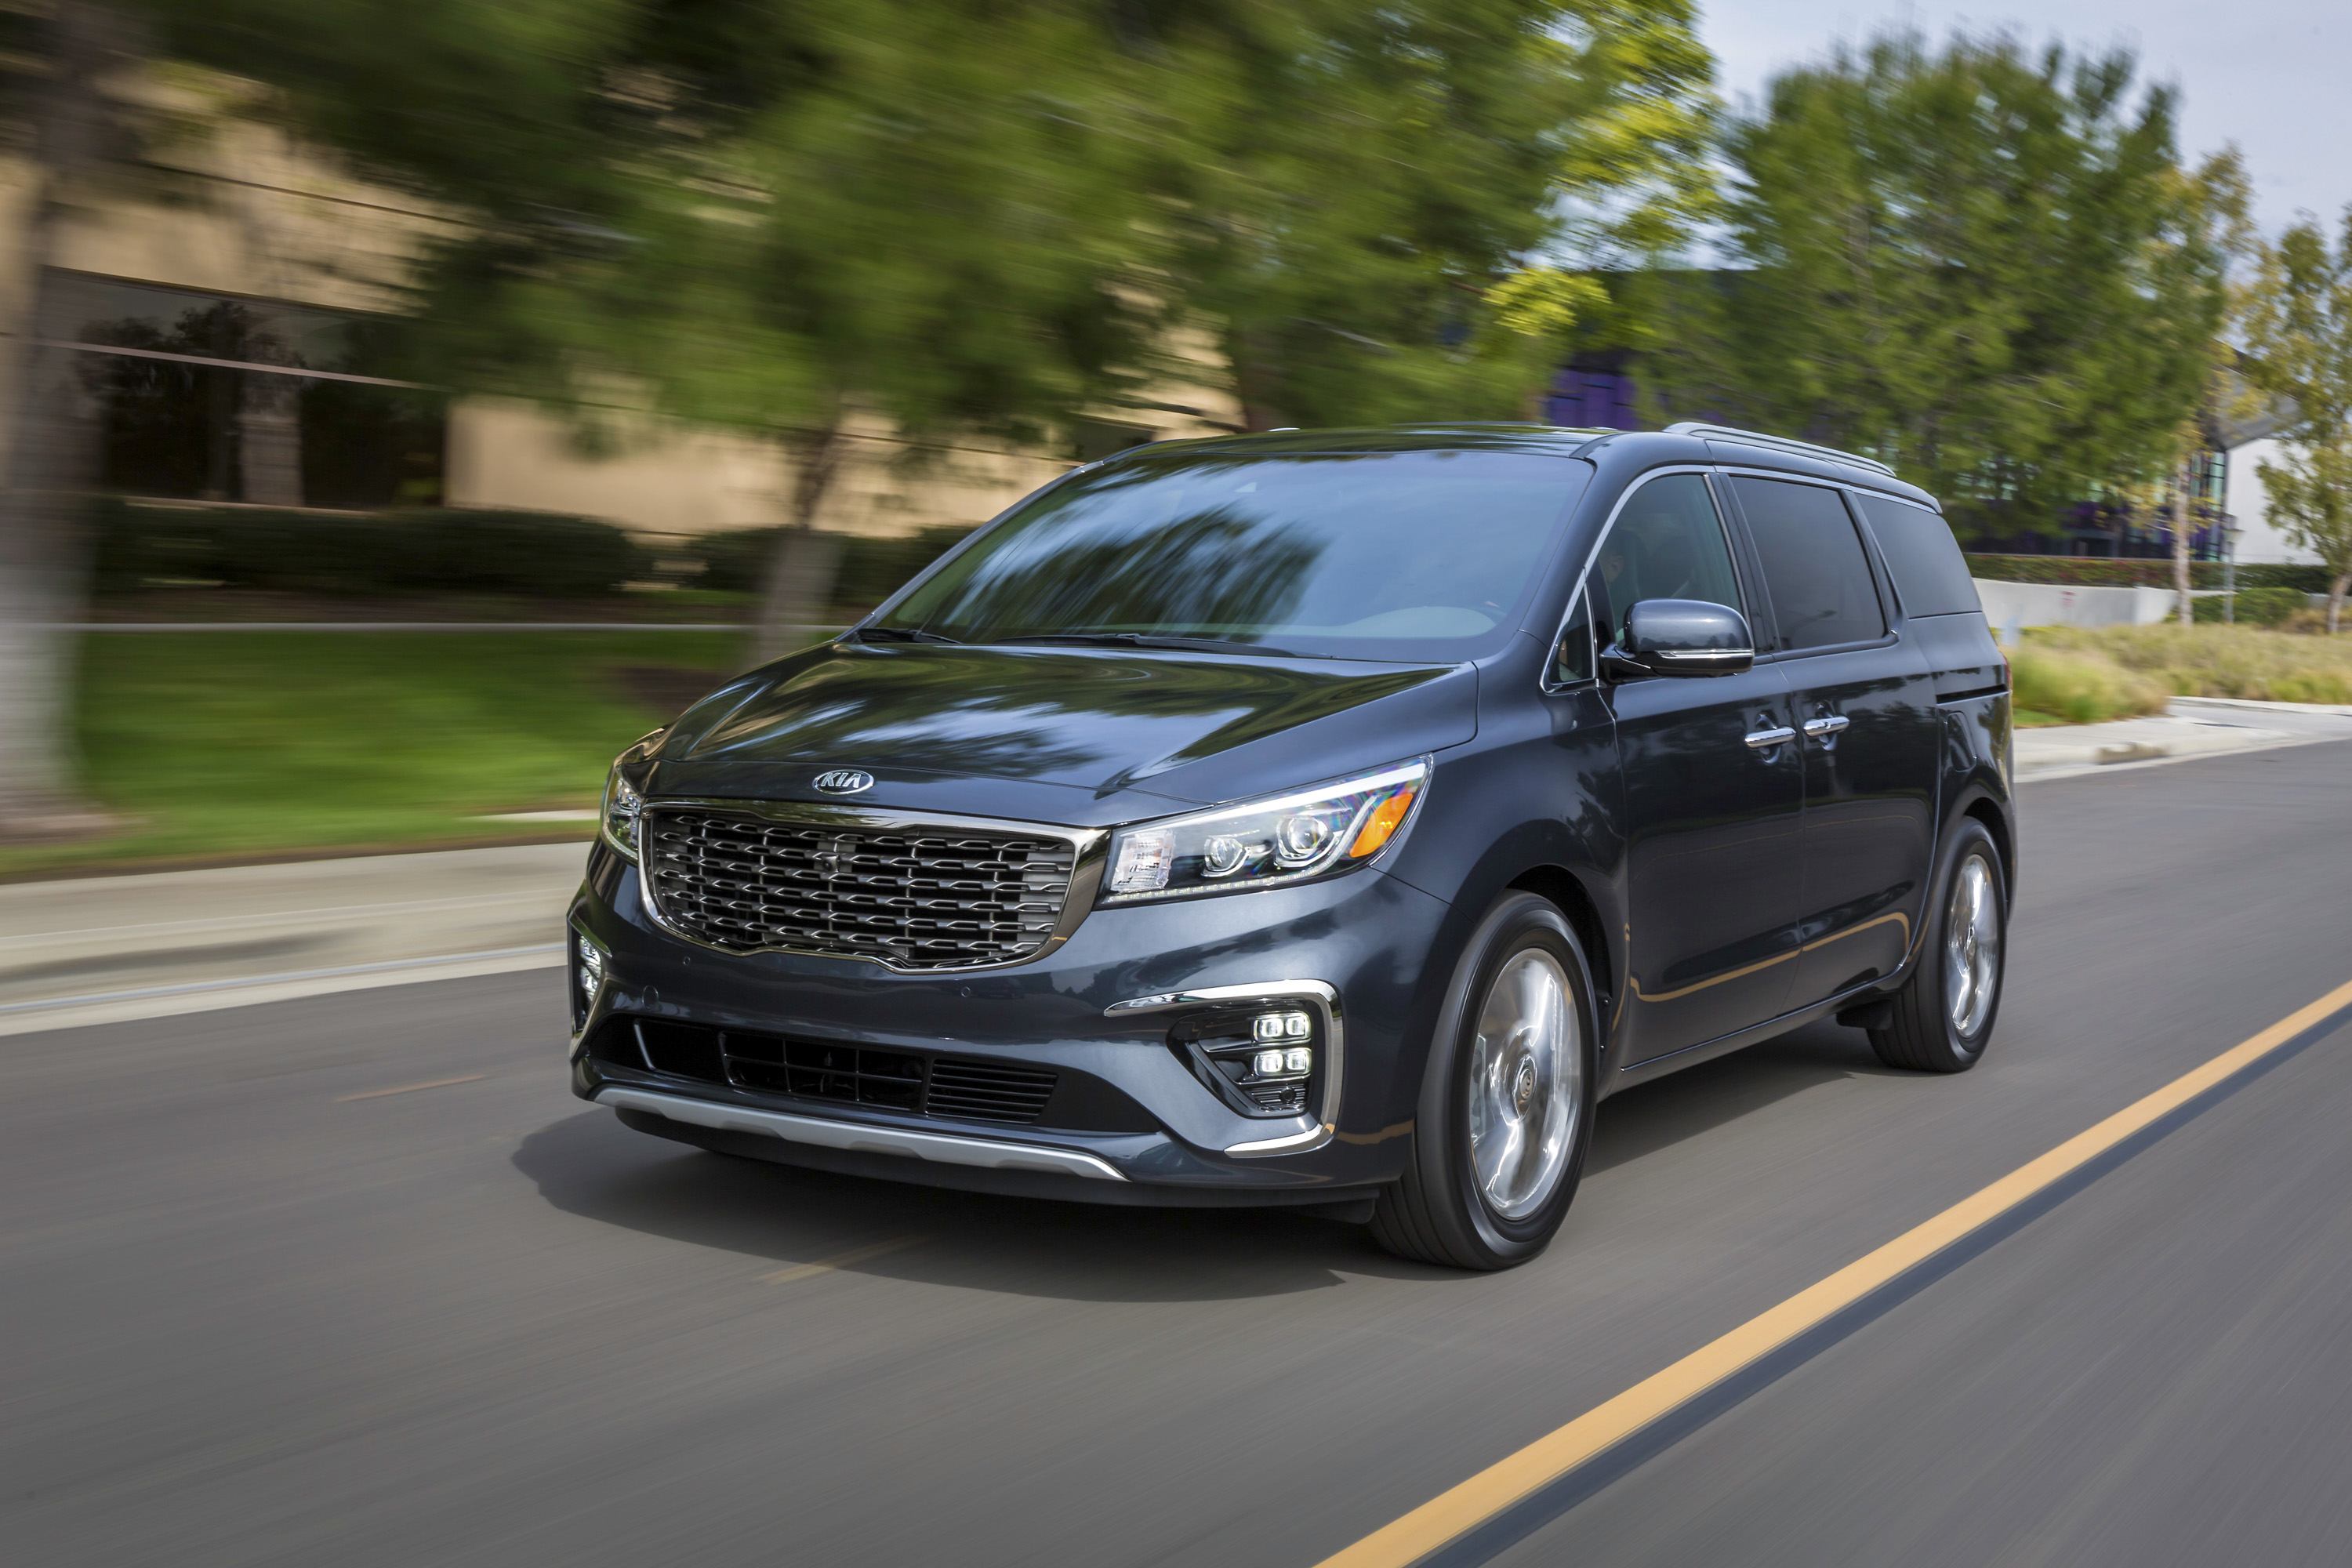 kia\u0027s updated sedona is pretty much about revised options and a newkia\u0027s updated sedona is pretty much about revised options and a new transmission